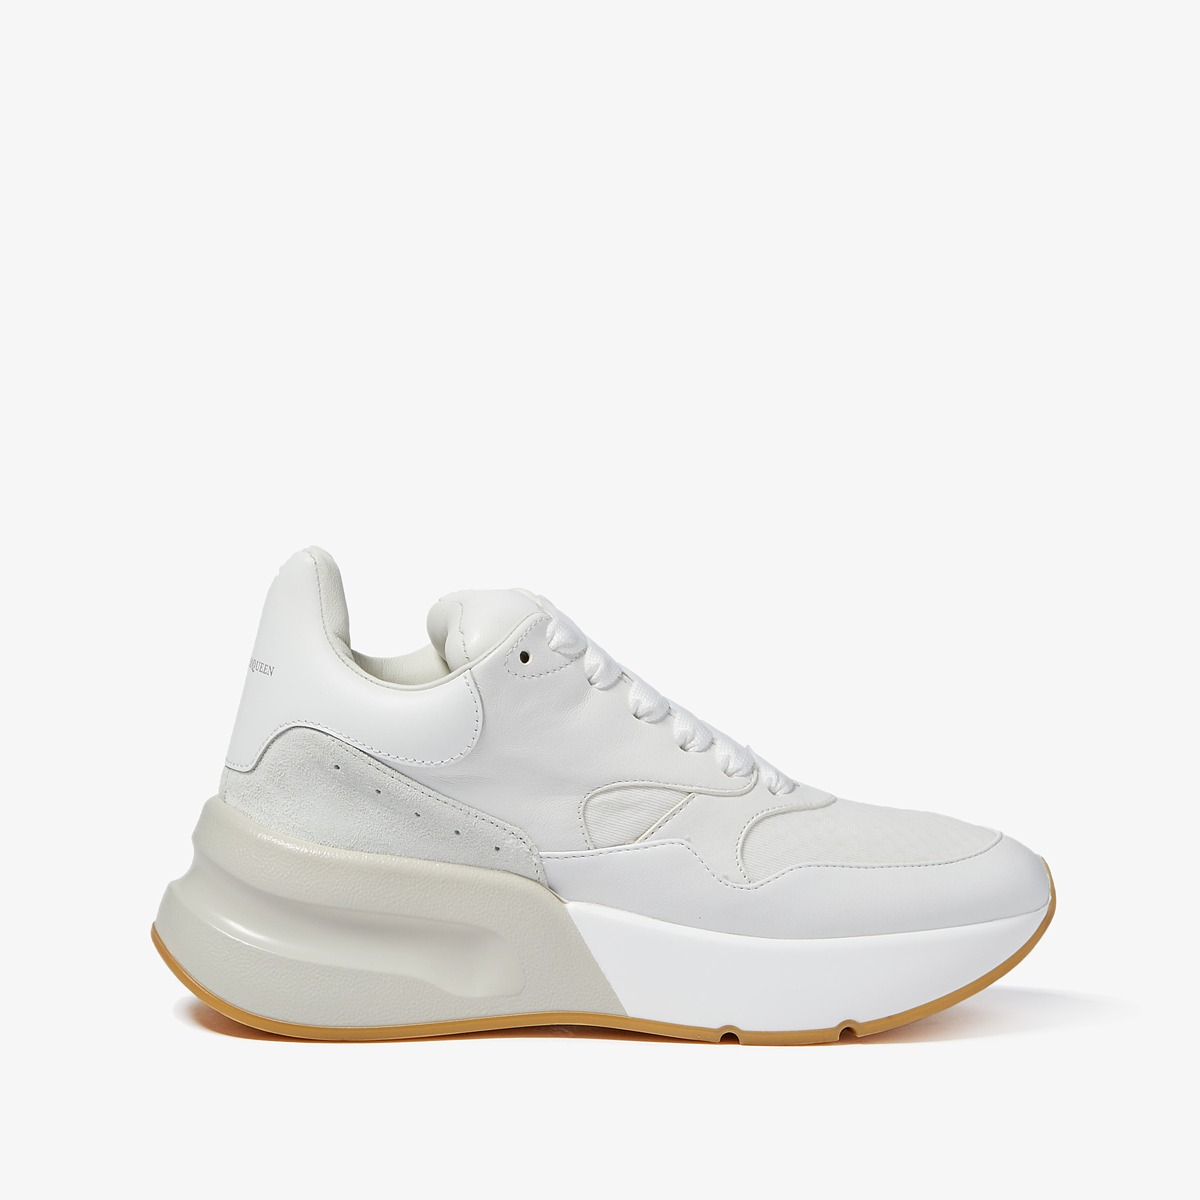 Alexander McQueen Oversized Runner Sneaker (White/Cream) Women's Shoes